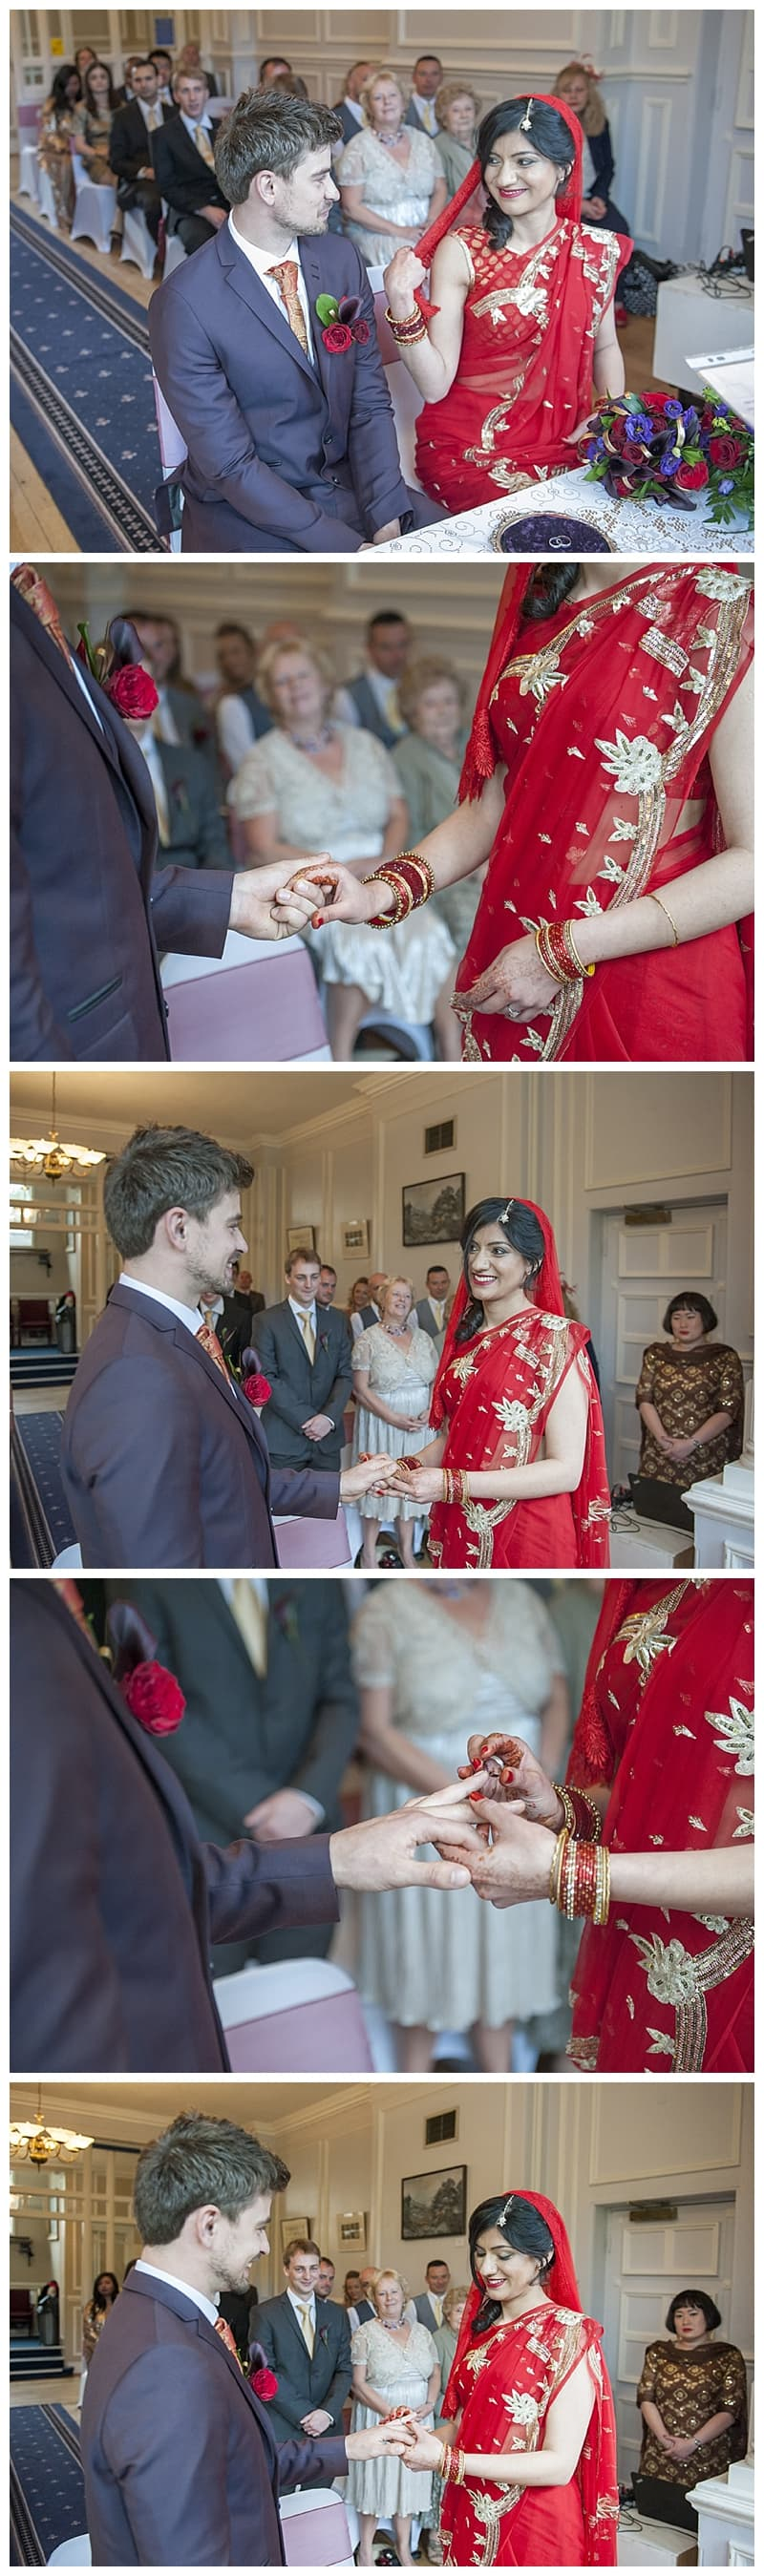 Stephens House Wedding, London, BenjaminWetherall Photography0003